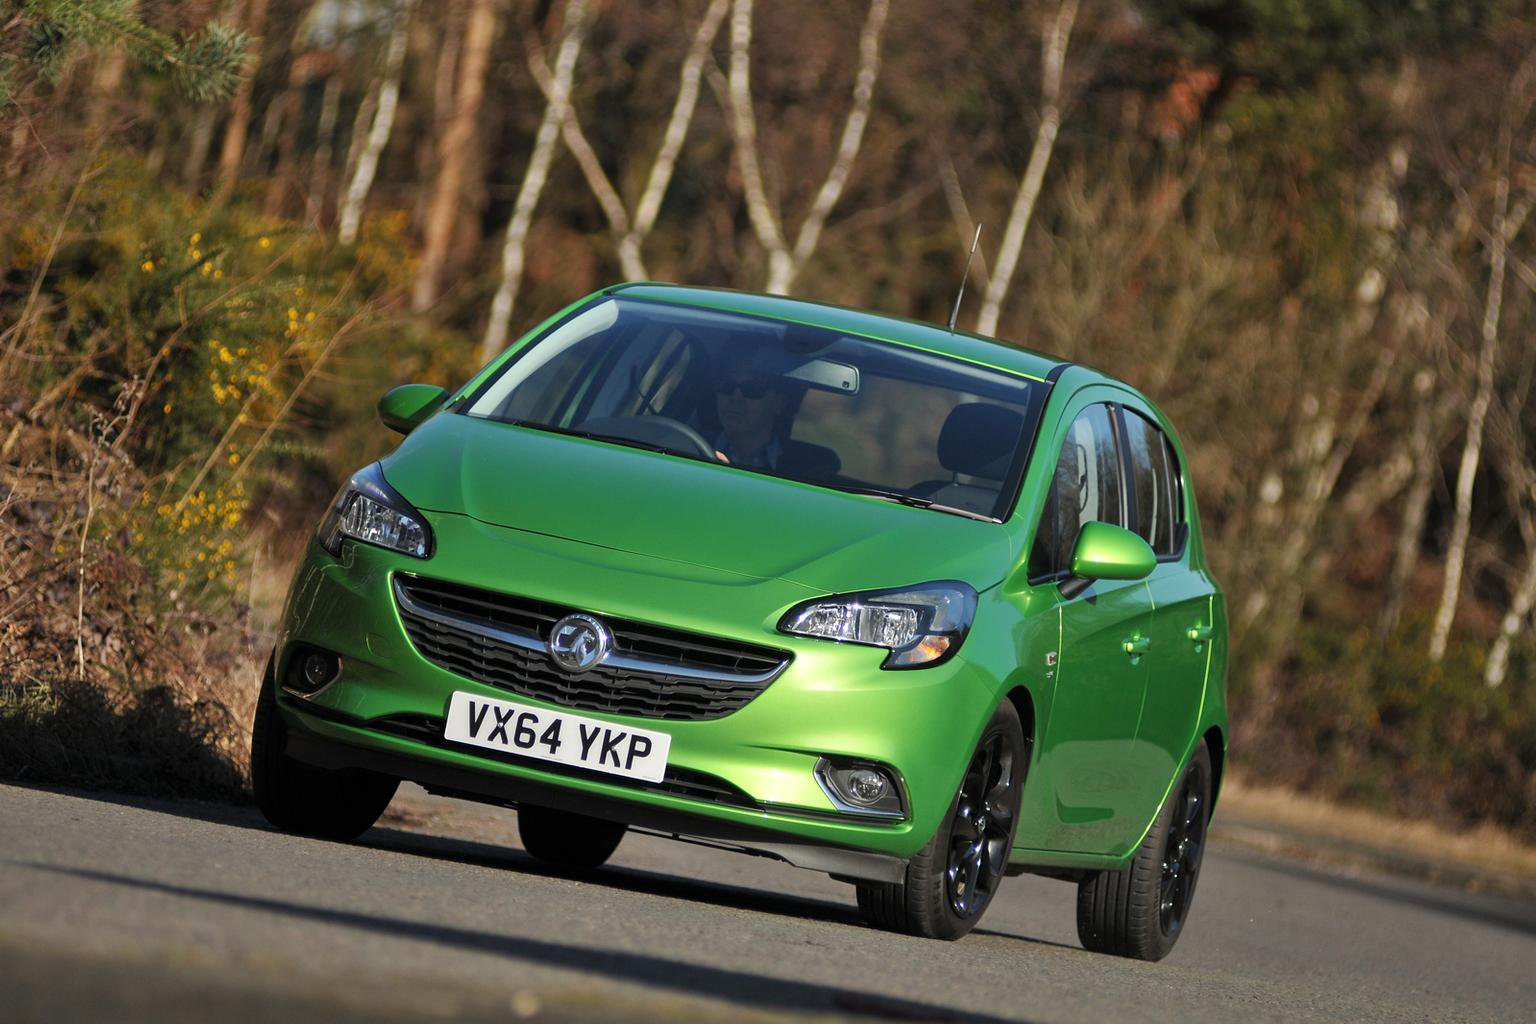 2017 Vauxhall Corsa 1 3 Cdti Sri Review